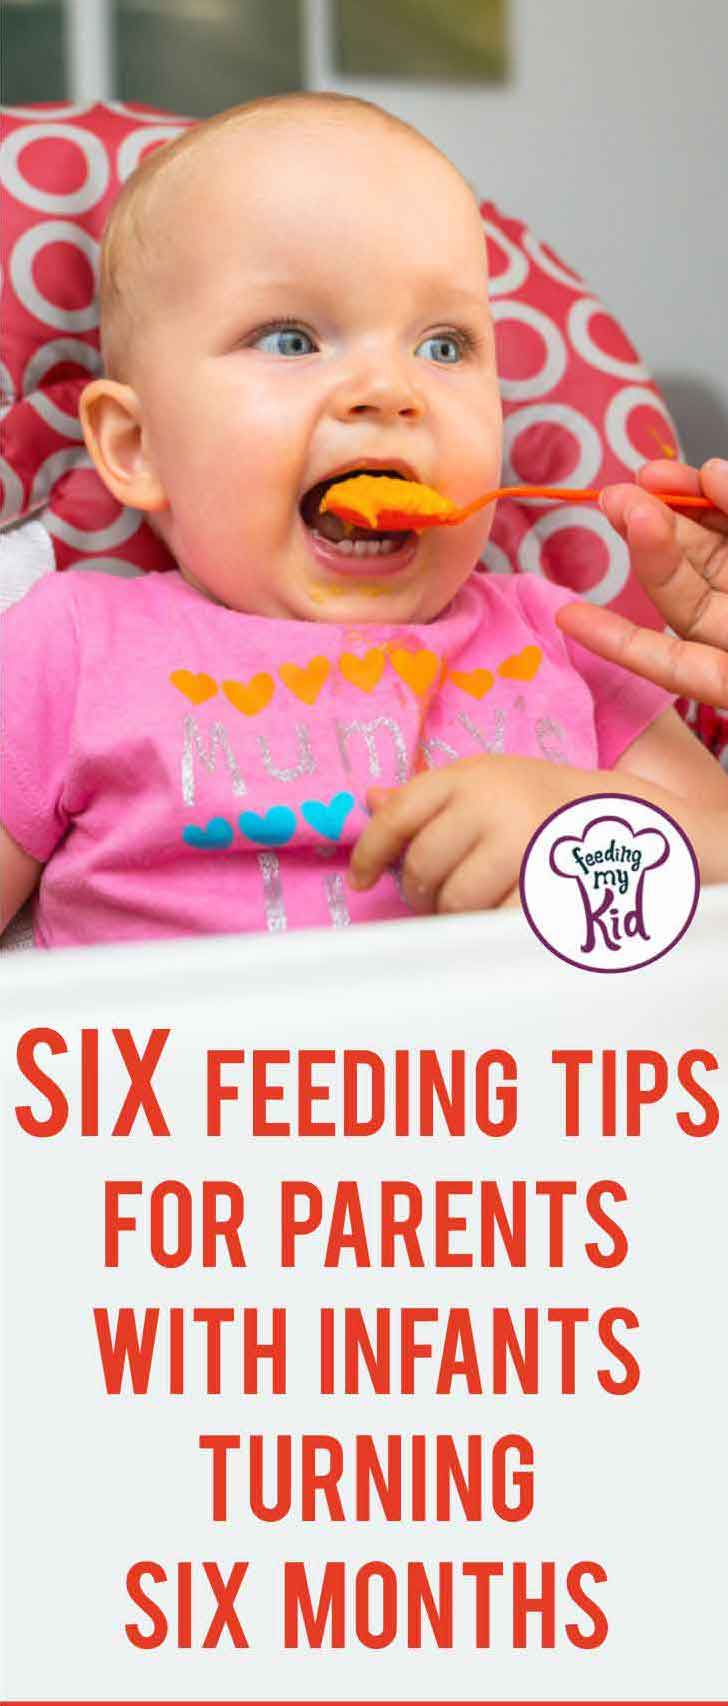 My goal today is to help simplify some of the major dietary changes that should occur when your child hits 6 months of age. Great infant care tips!